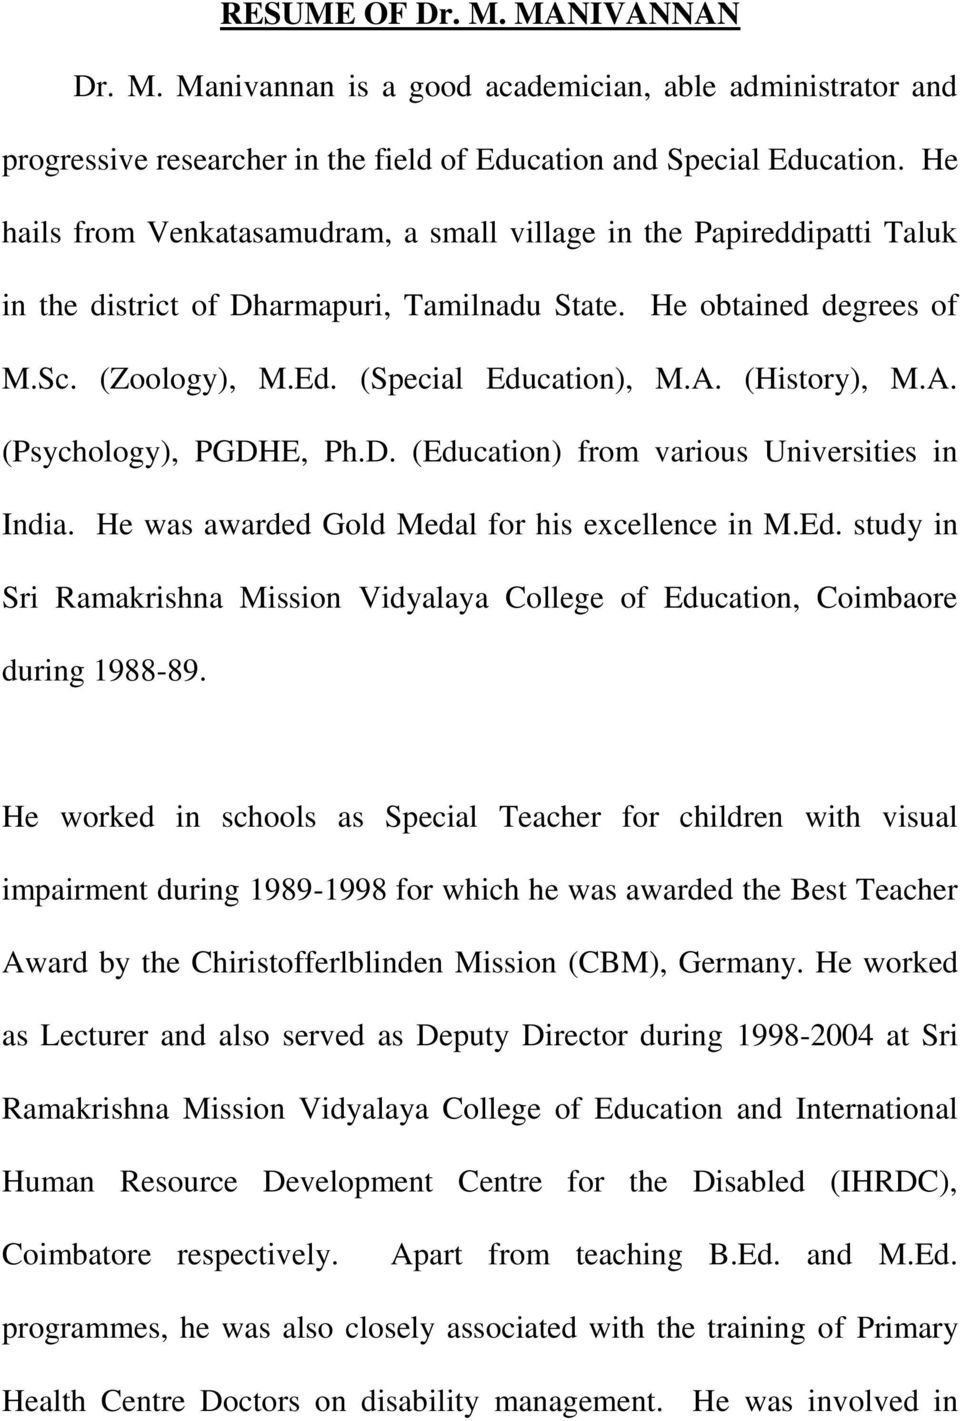 (History), M.A. (Psychology), PGDHE, Ph.D. (Education) from various Universities in India. He was awarded Gold Medal for his excellence in M.Ed. study in Sri Ramakrishna Mission Vidyalaya College of Education, Coimbaore during 1988-89.